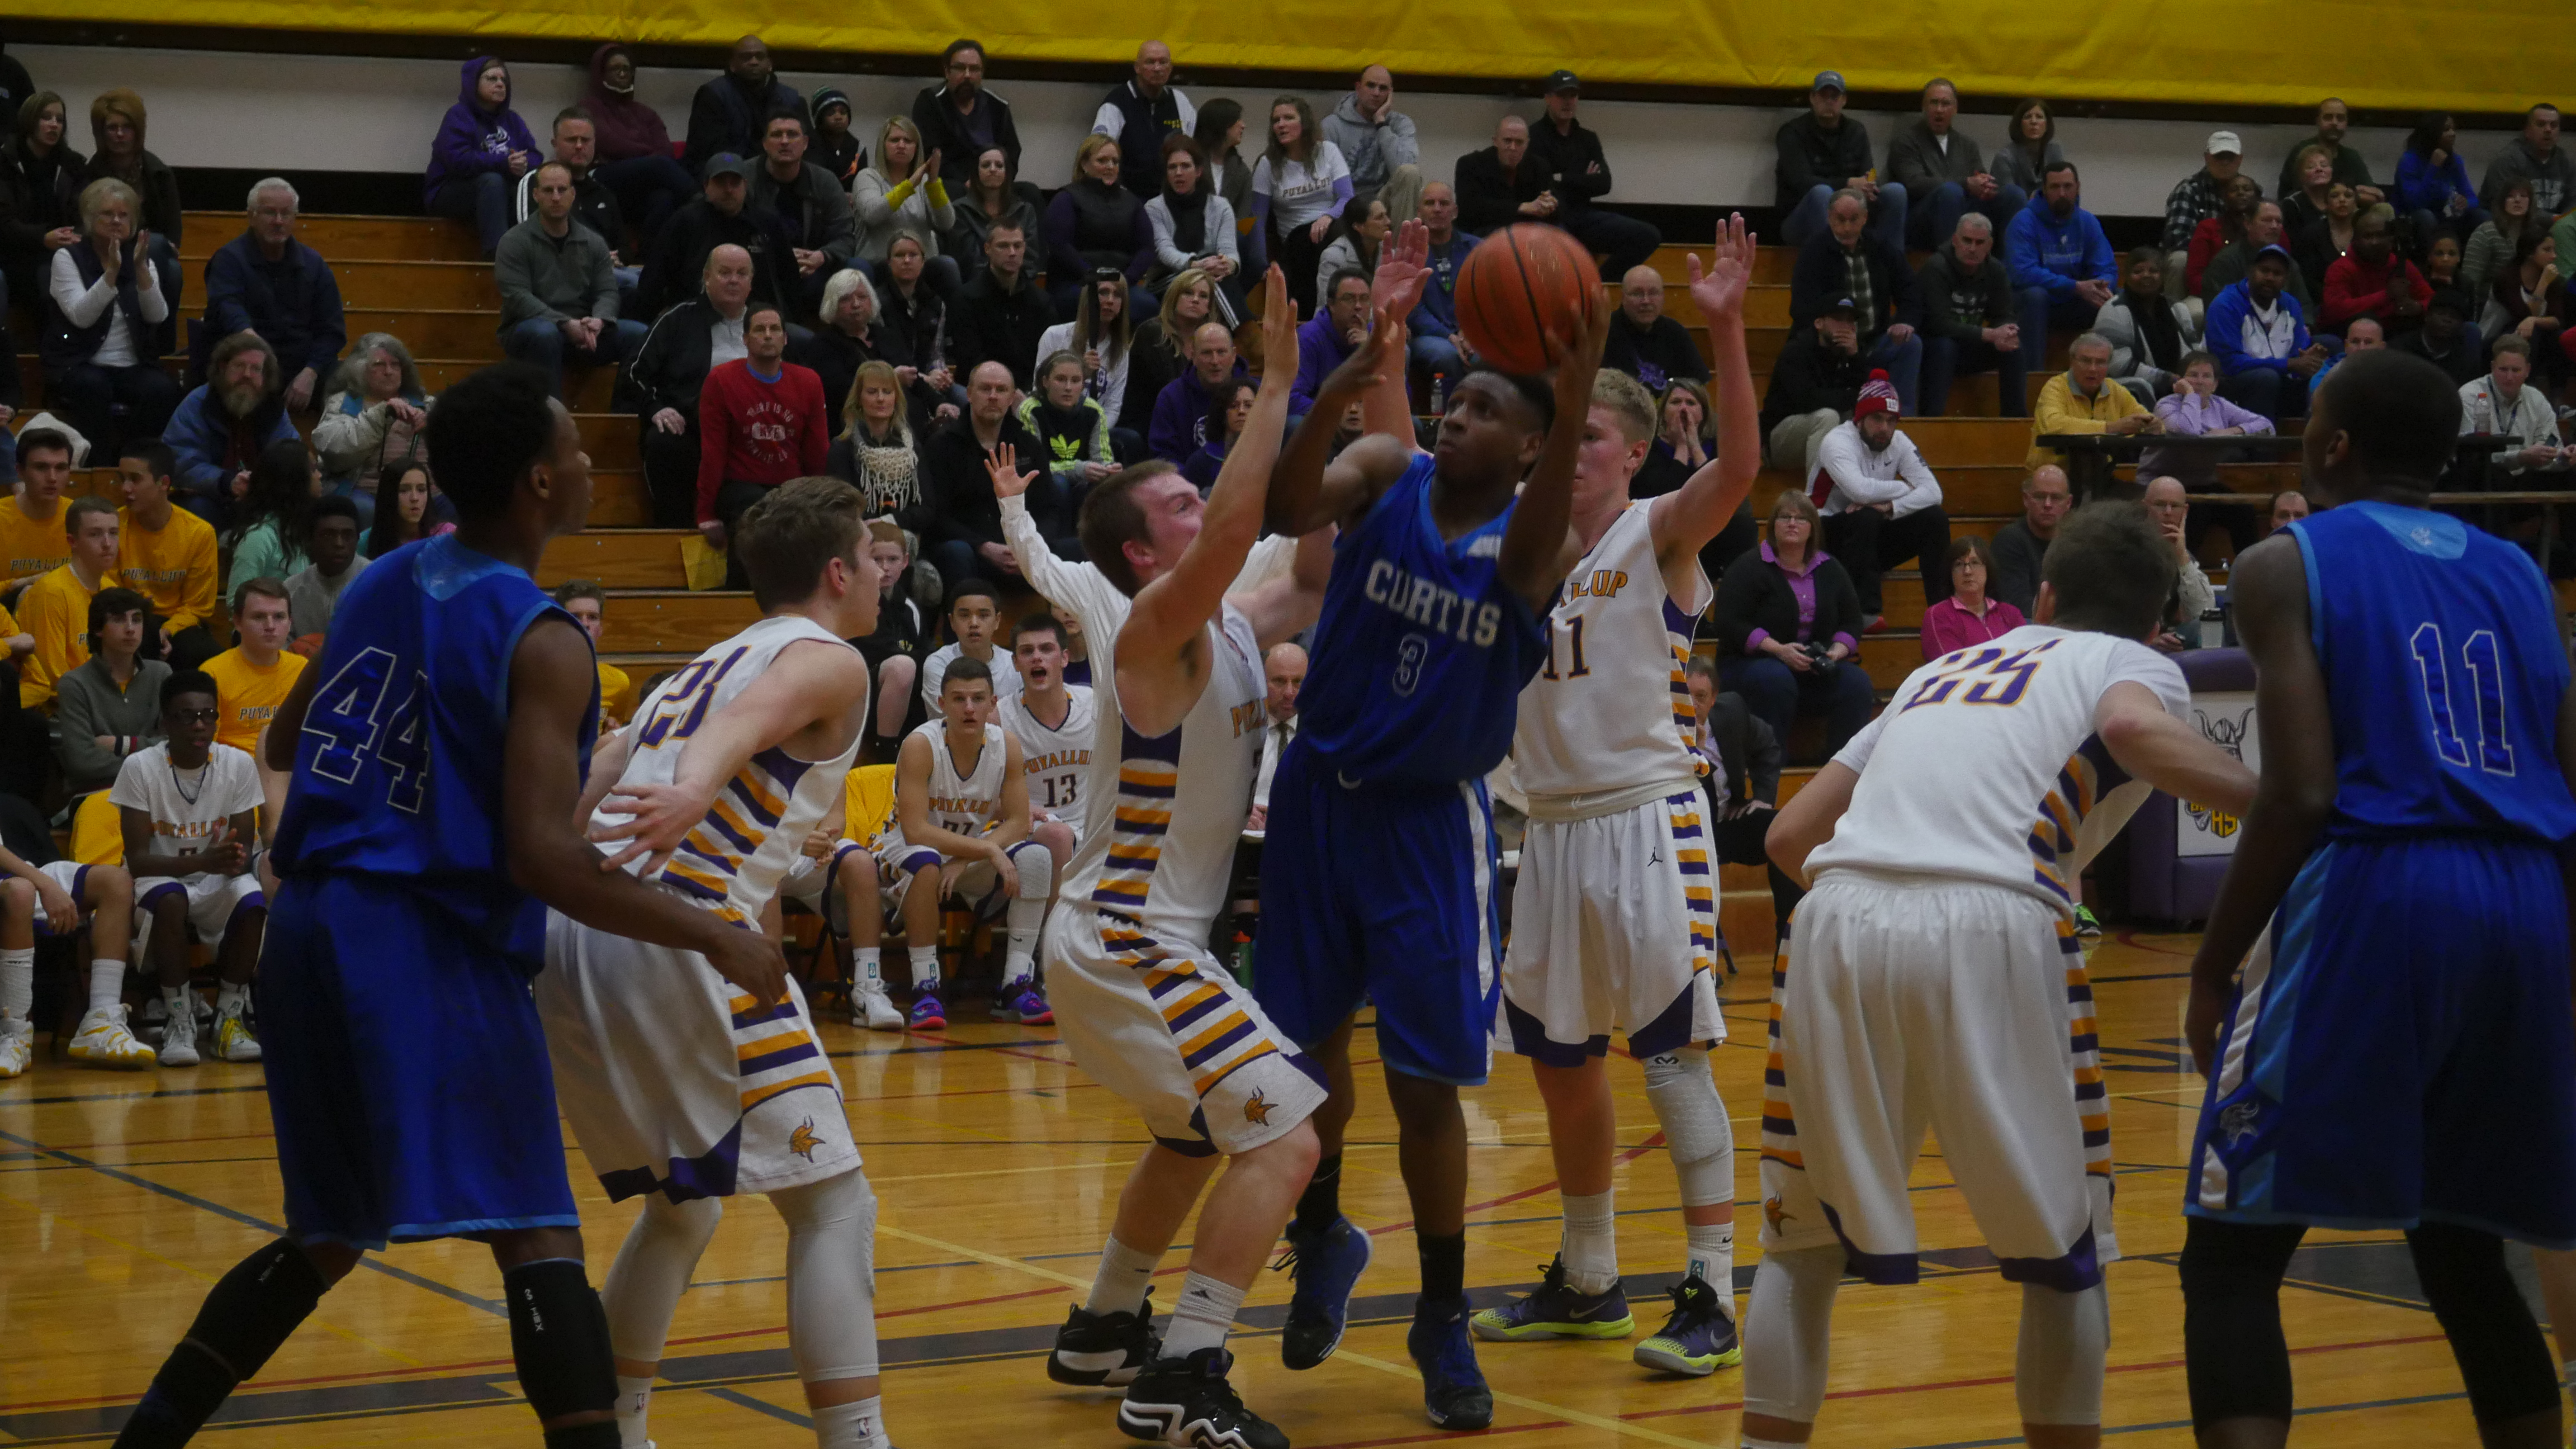 Curtis guard Ashaunti Potts-Woods puts up a shot in the paint in Tuesday's win over Puyallup.